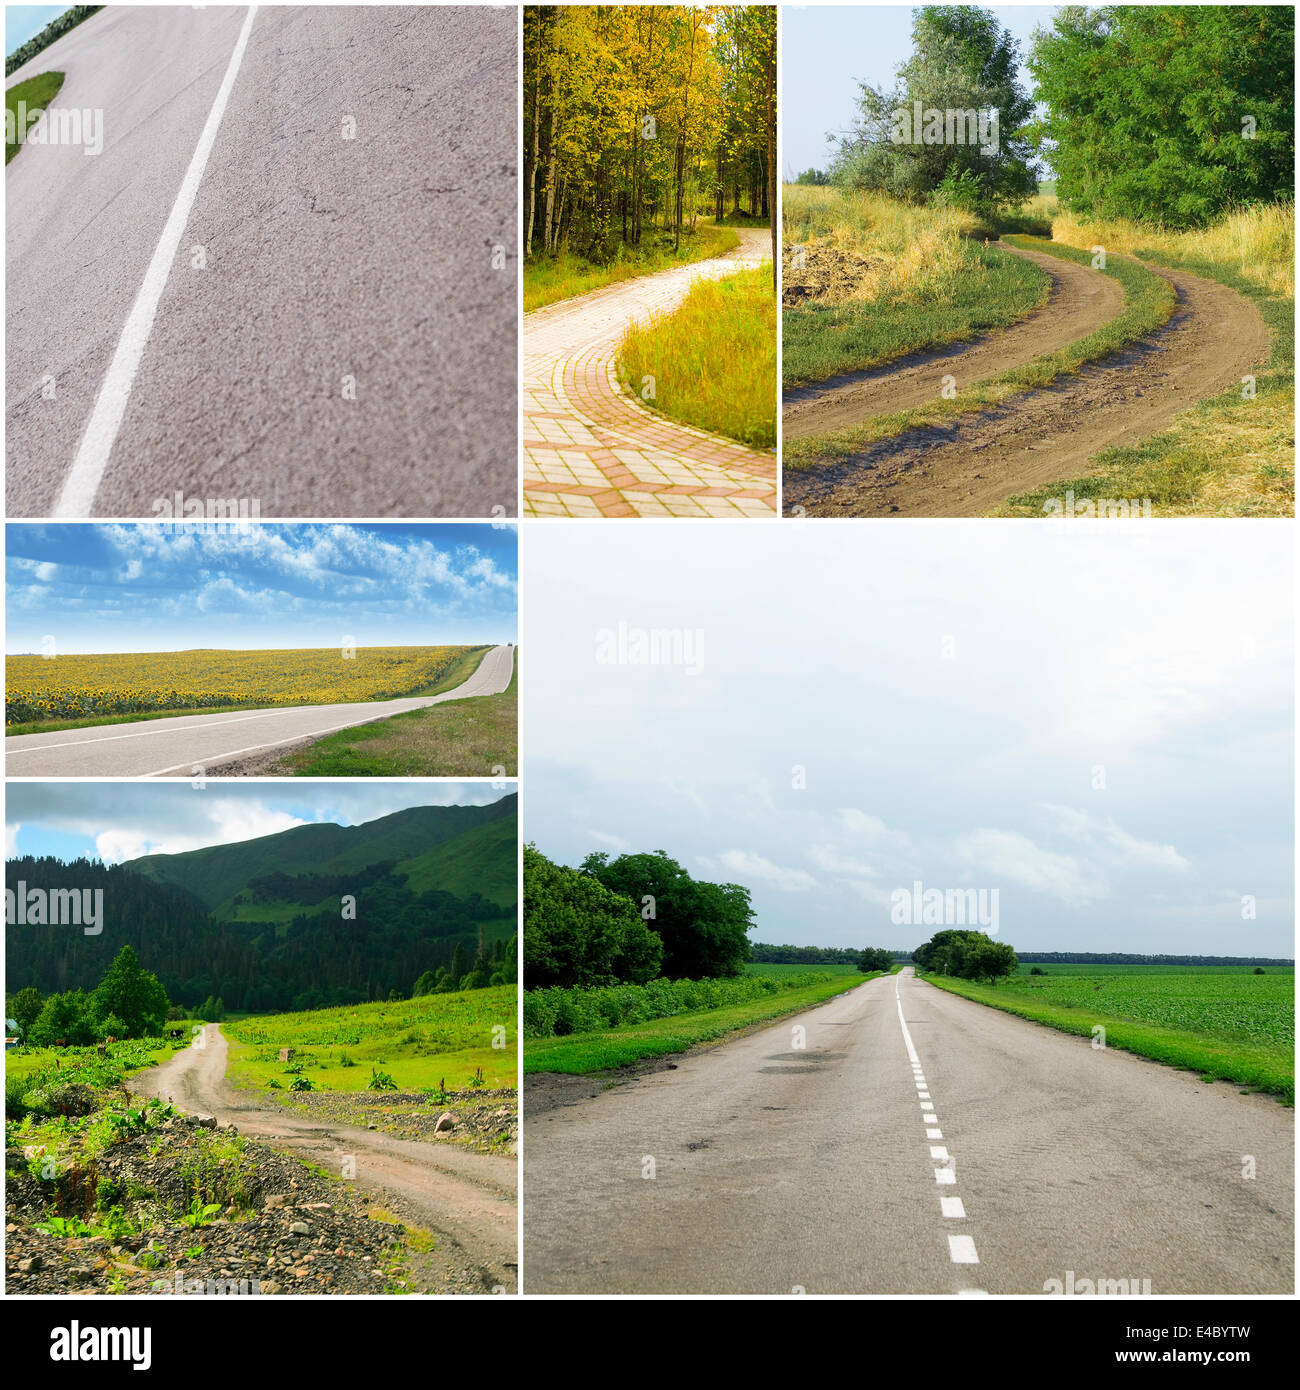 country roads in different seasons - Stock Image